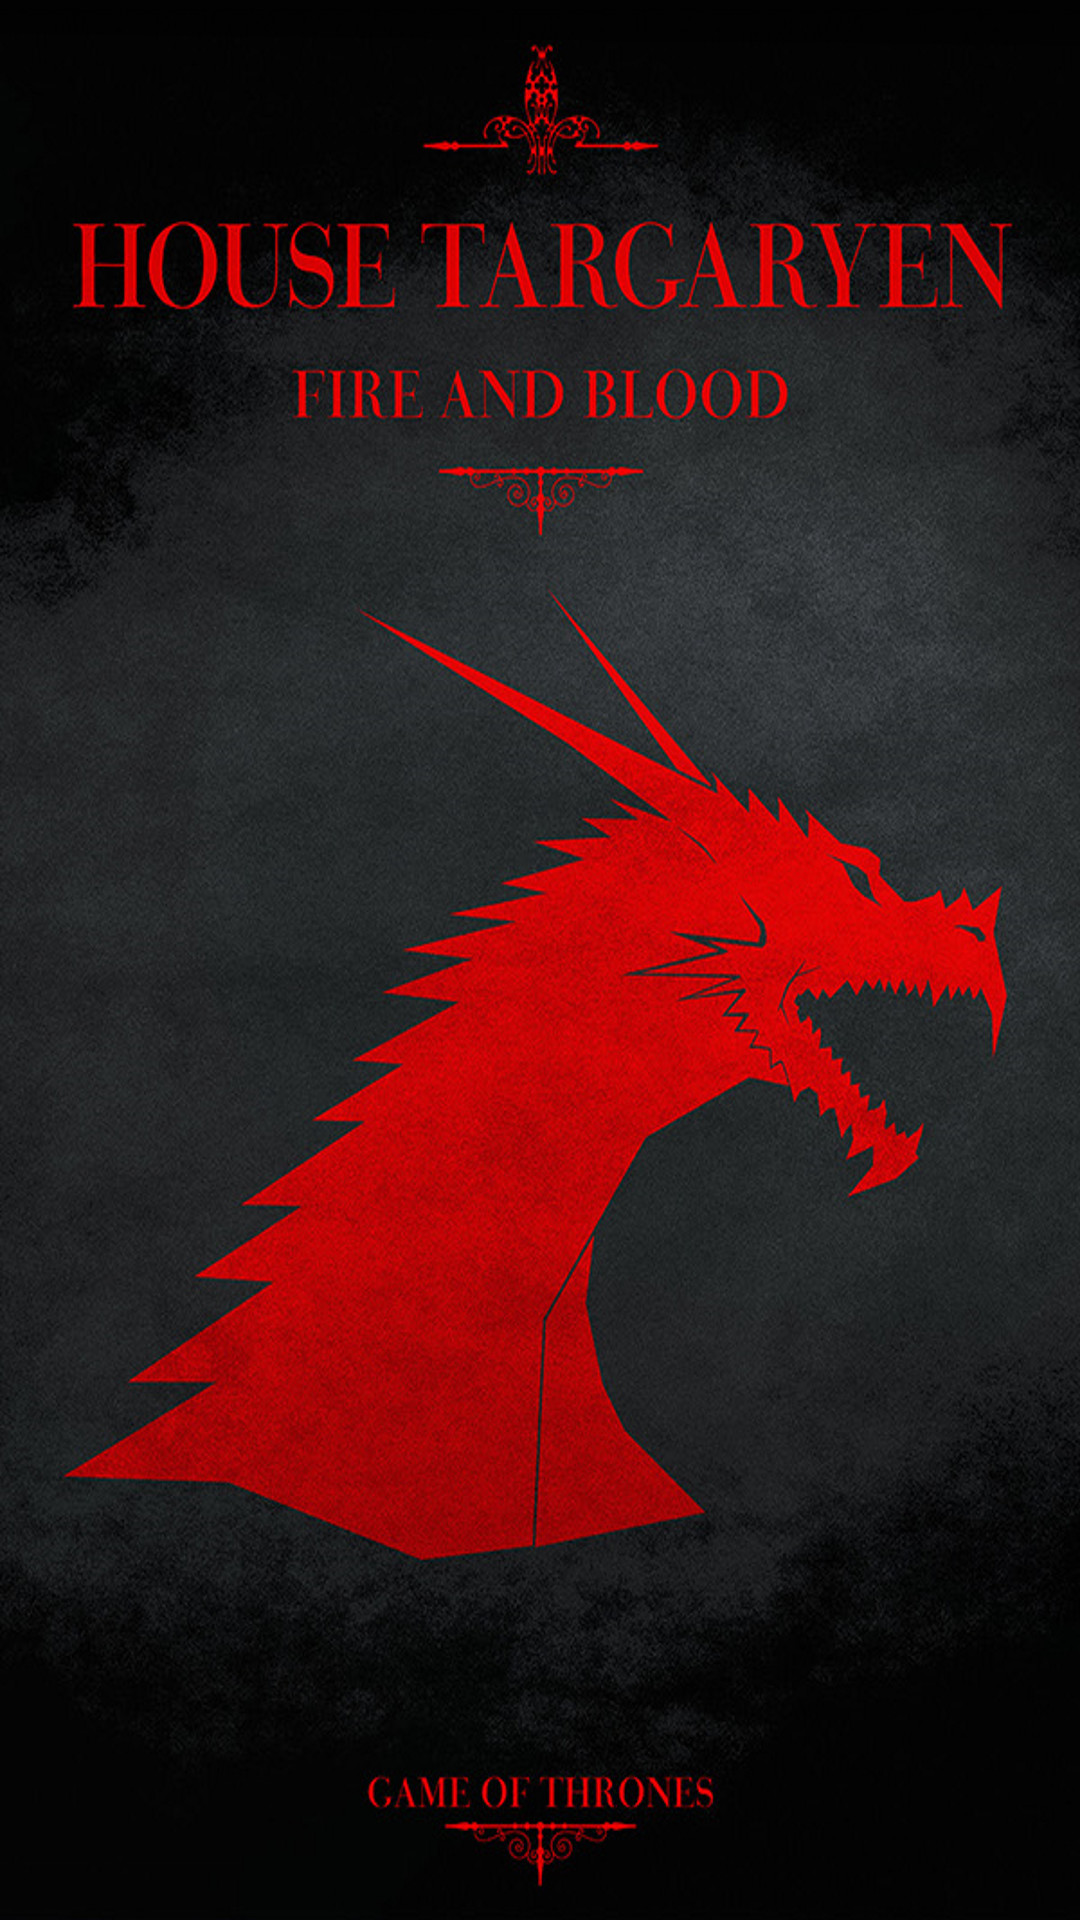 wallpaper for phone phone wallpapers game of thrones wallpaper game of  thrones house stark house lannister